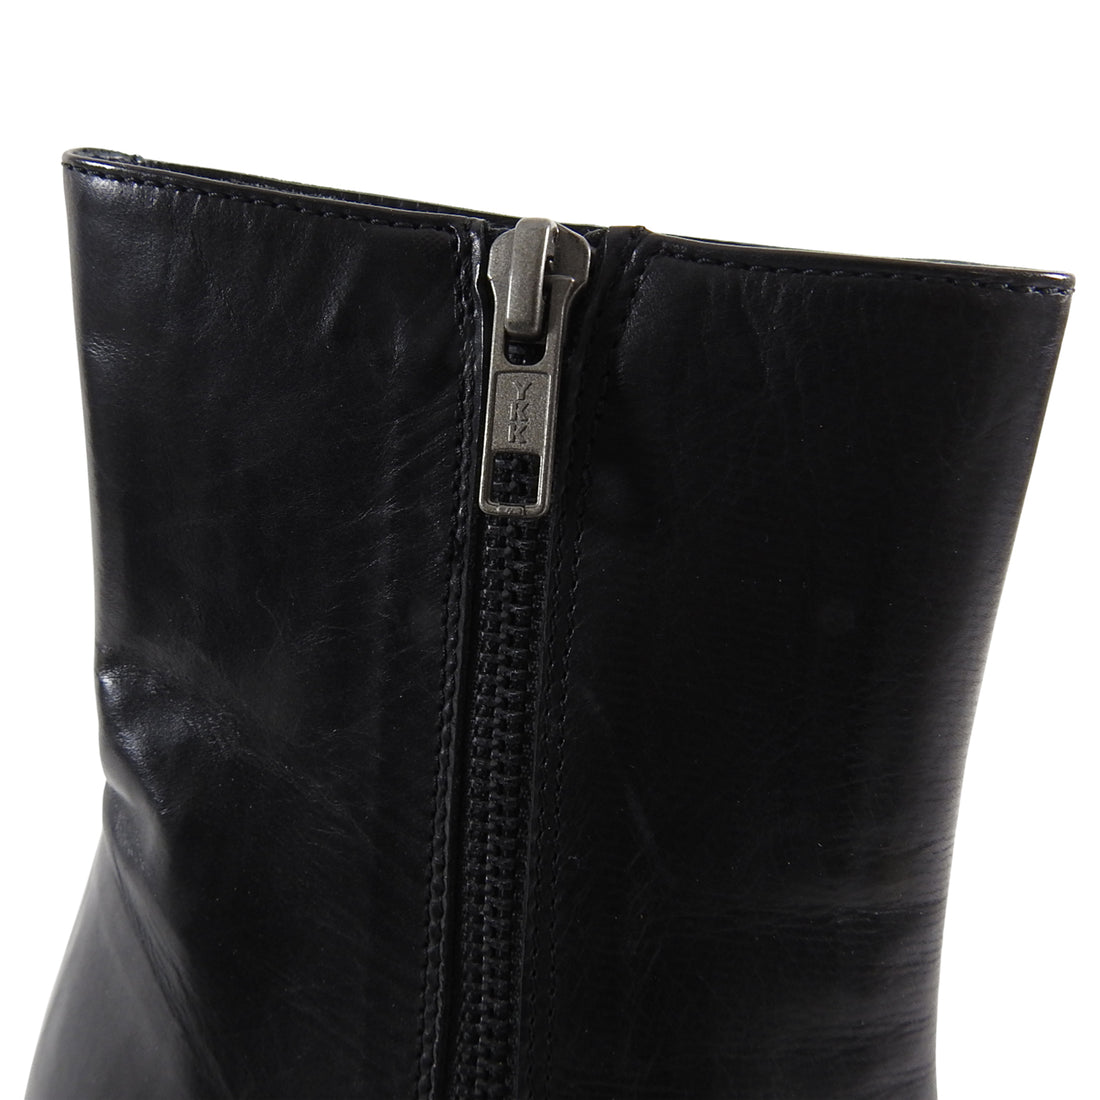 Ann Demeulemeester Black and Silver Wedge Ankle Boots - 39.5